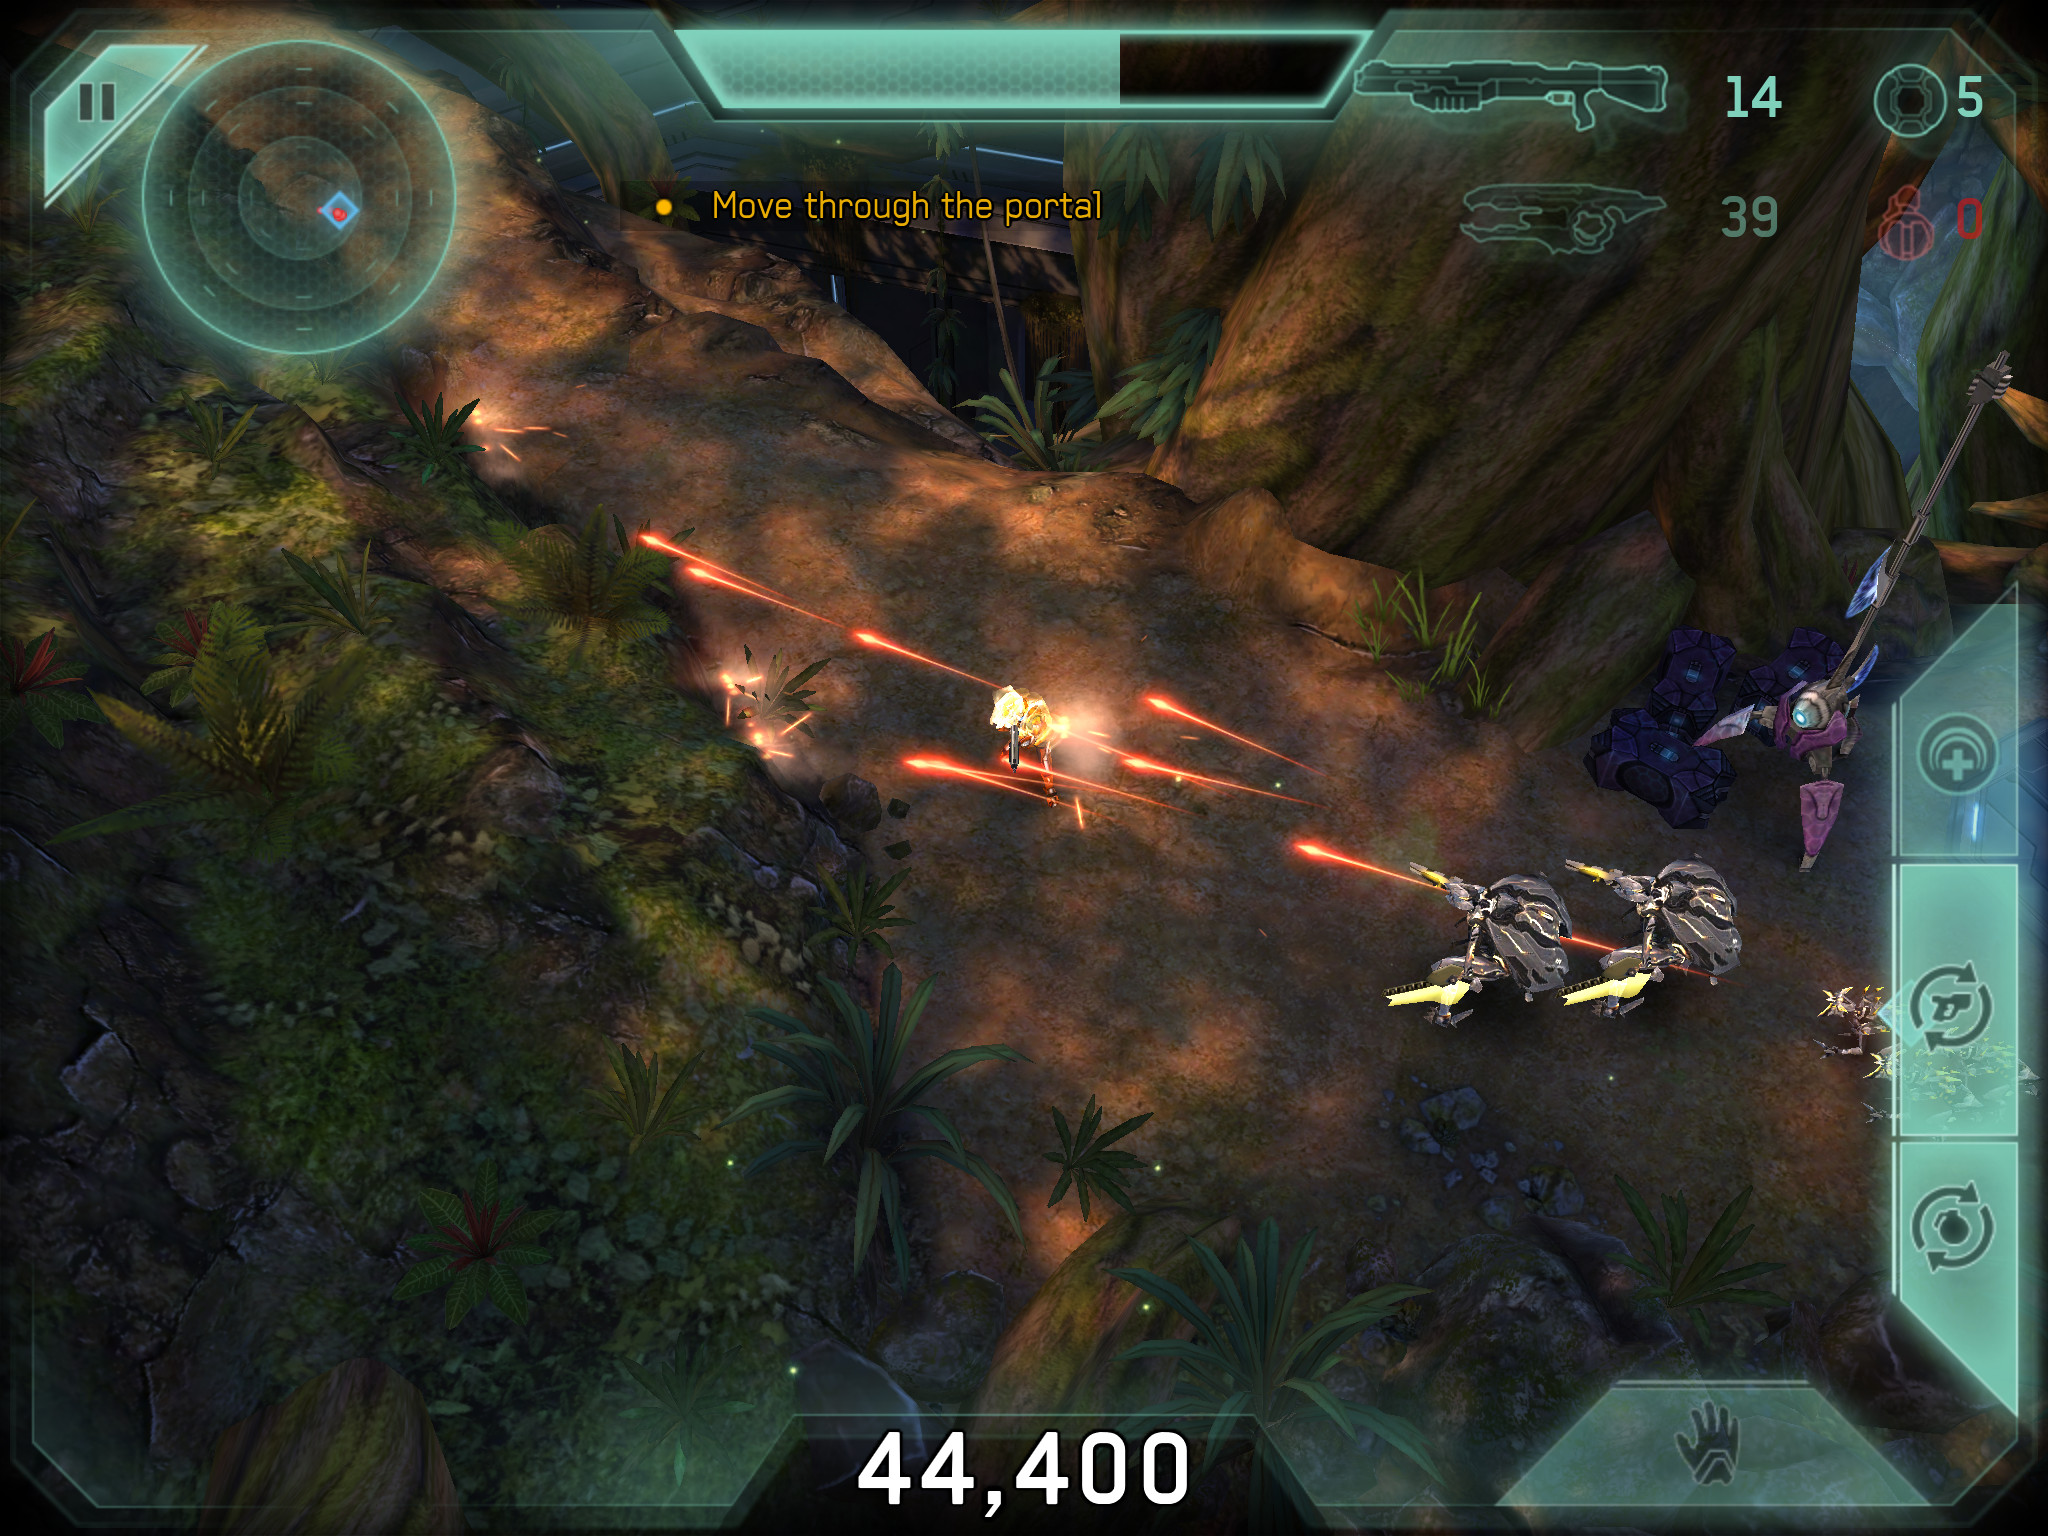 Gold Award-winning Halo: Spartan Strike is at its lowest price yet on iOS